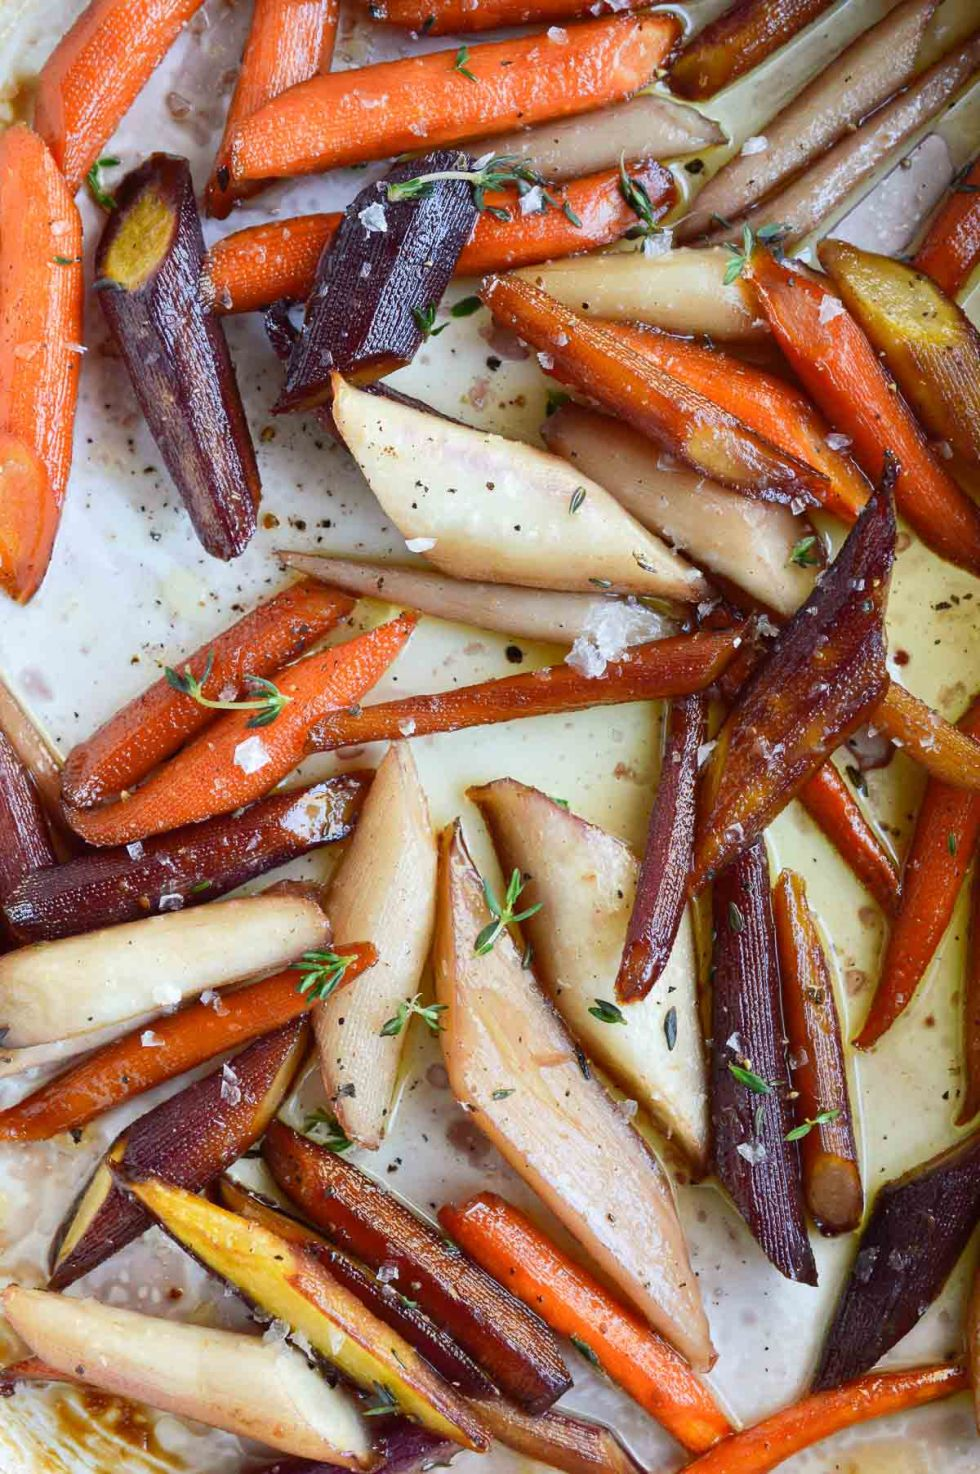 Enjoy your favorite holiday side dish without the guilt. These Healthy Candied Carrots are roasted with olive oil, maple syrup and thyme. Sweet and salty roasted carrots will be a new family favorite! Vegan, Vegetarian, Paleo #paleorecipes #veganrecipes